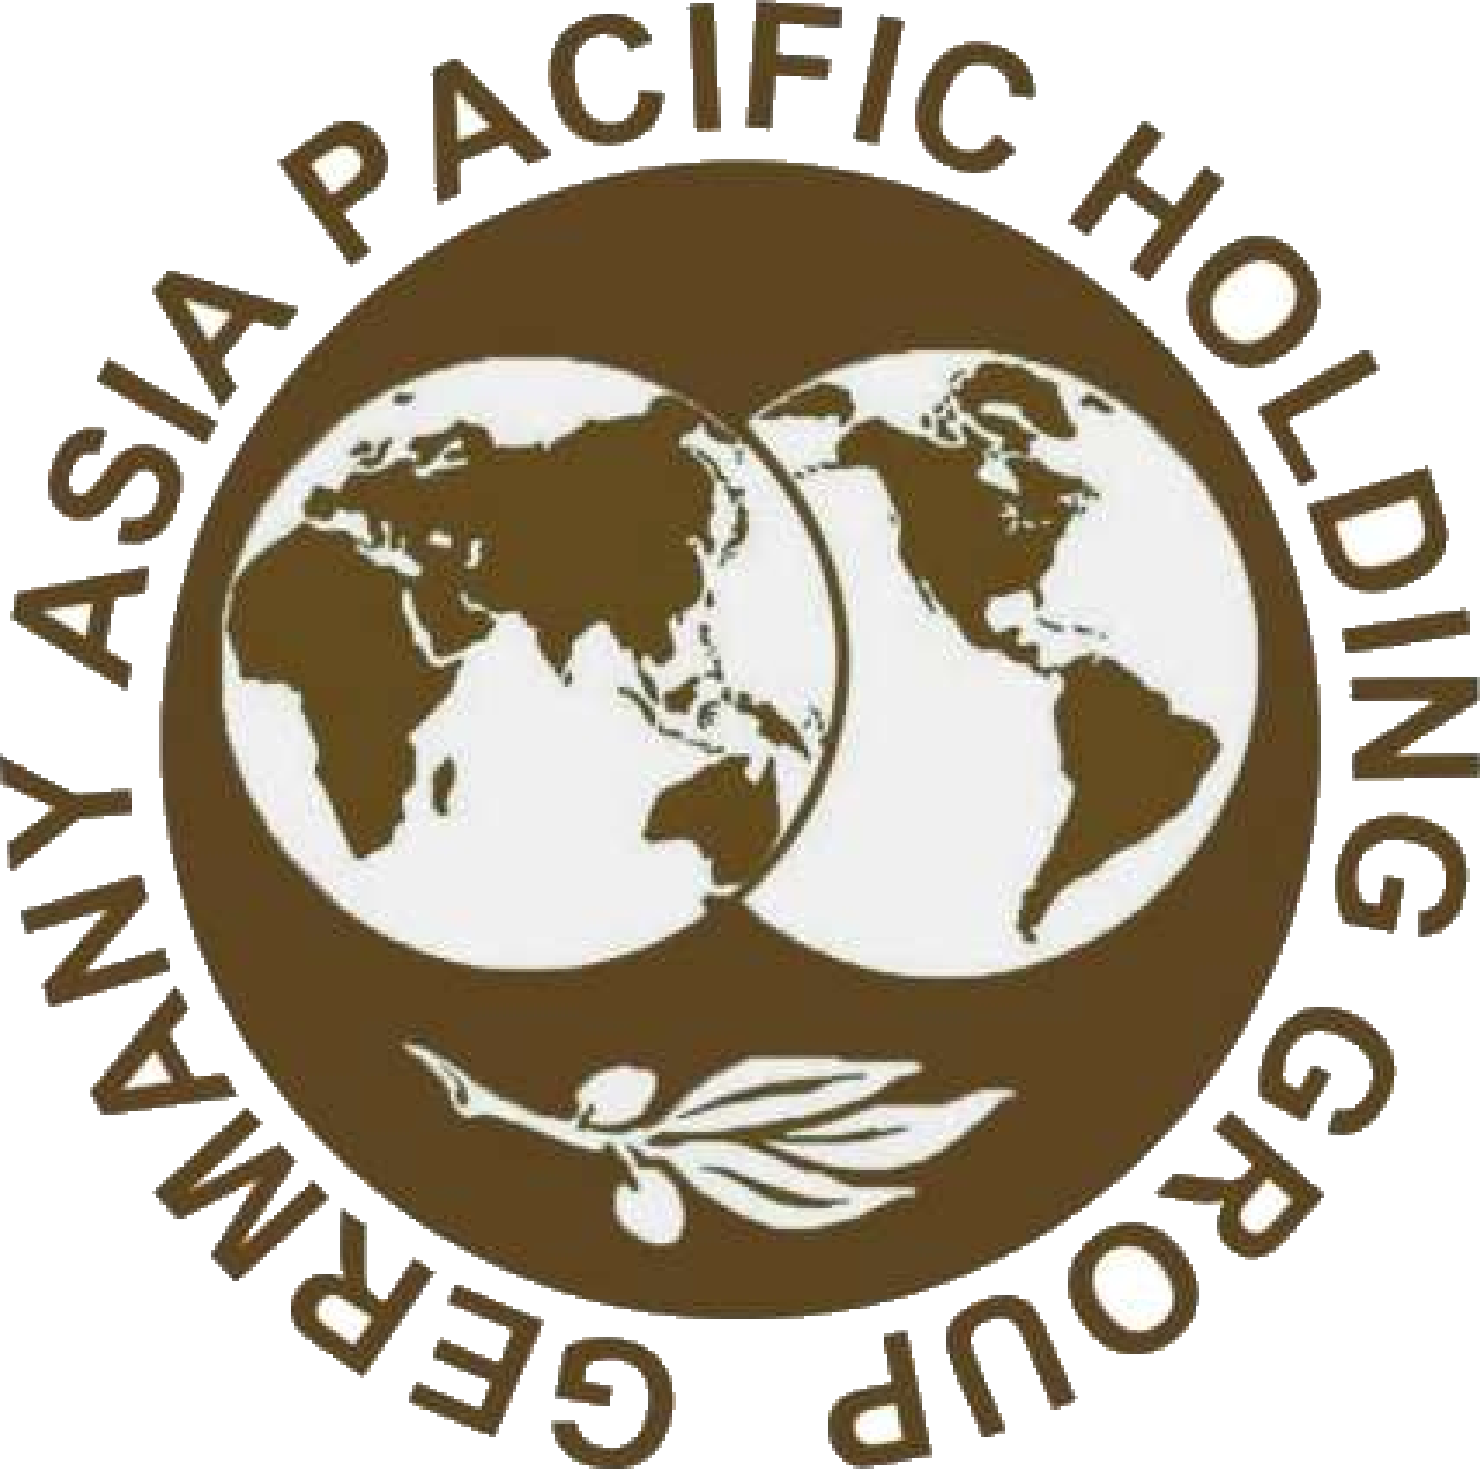 Germany Asia Pacific Holding Group Co. Limited